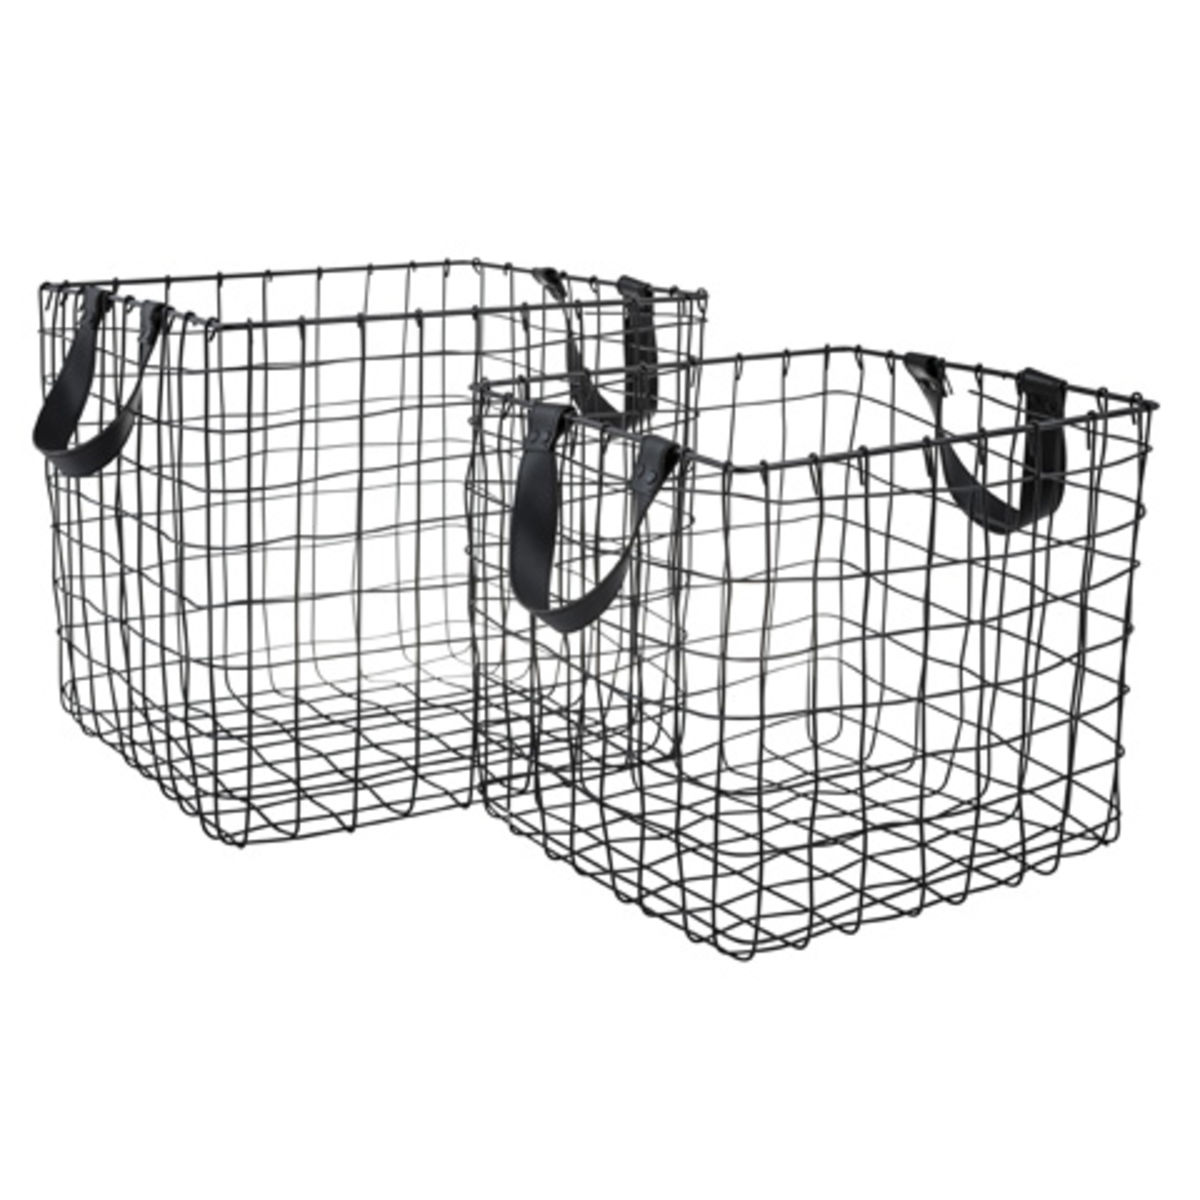 Eightmood storage basket Olof